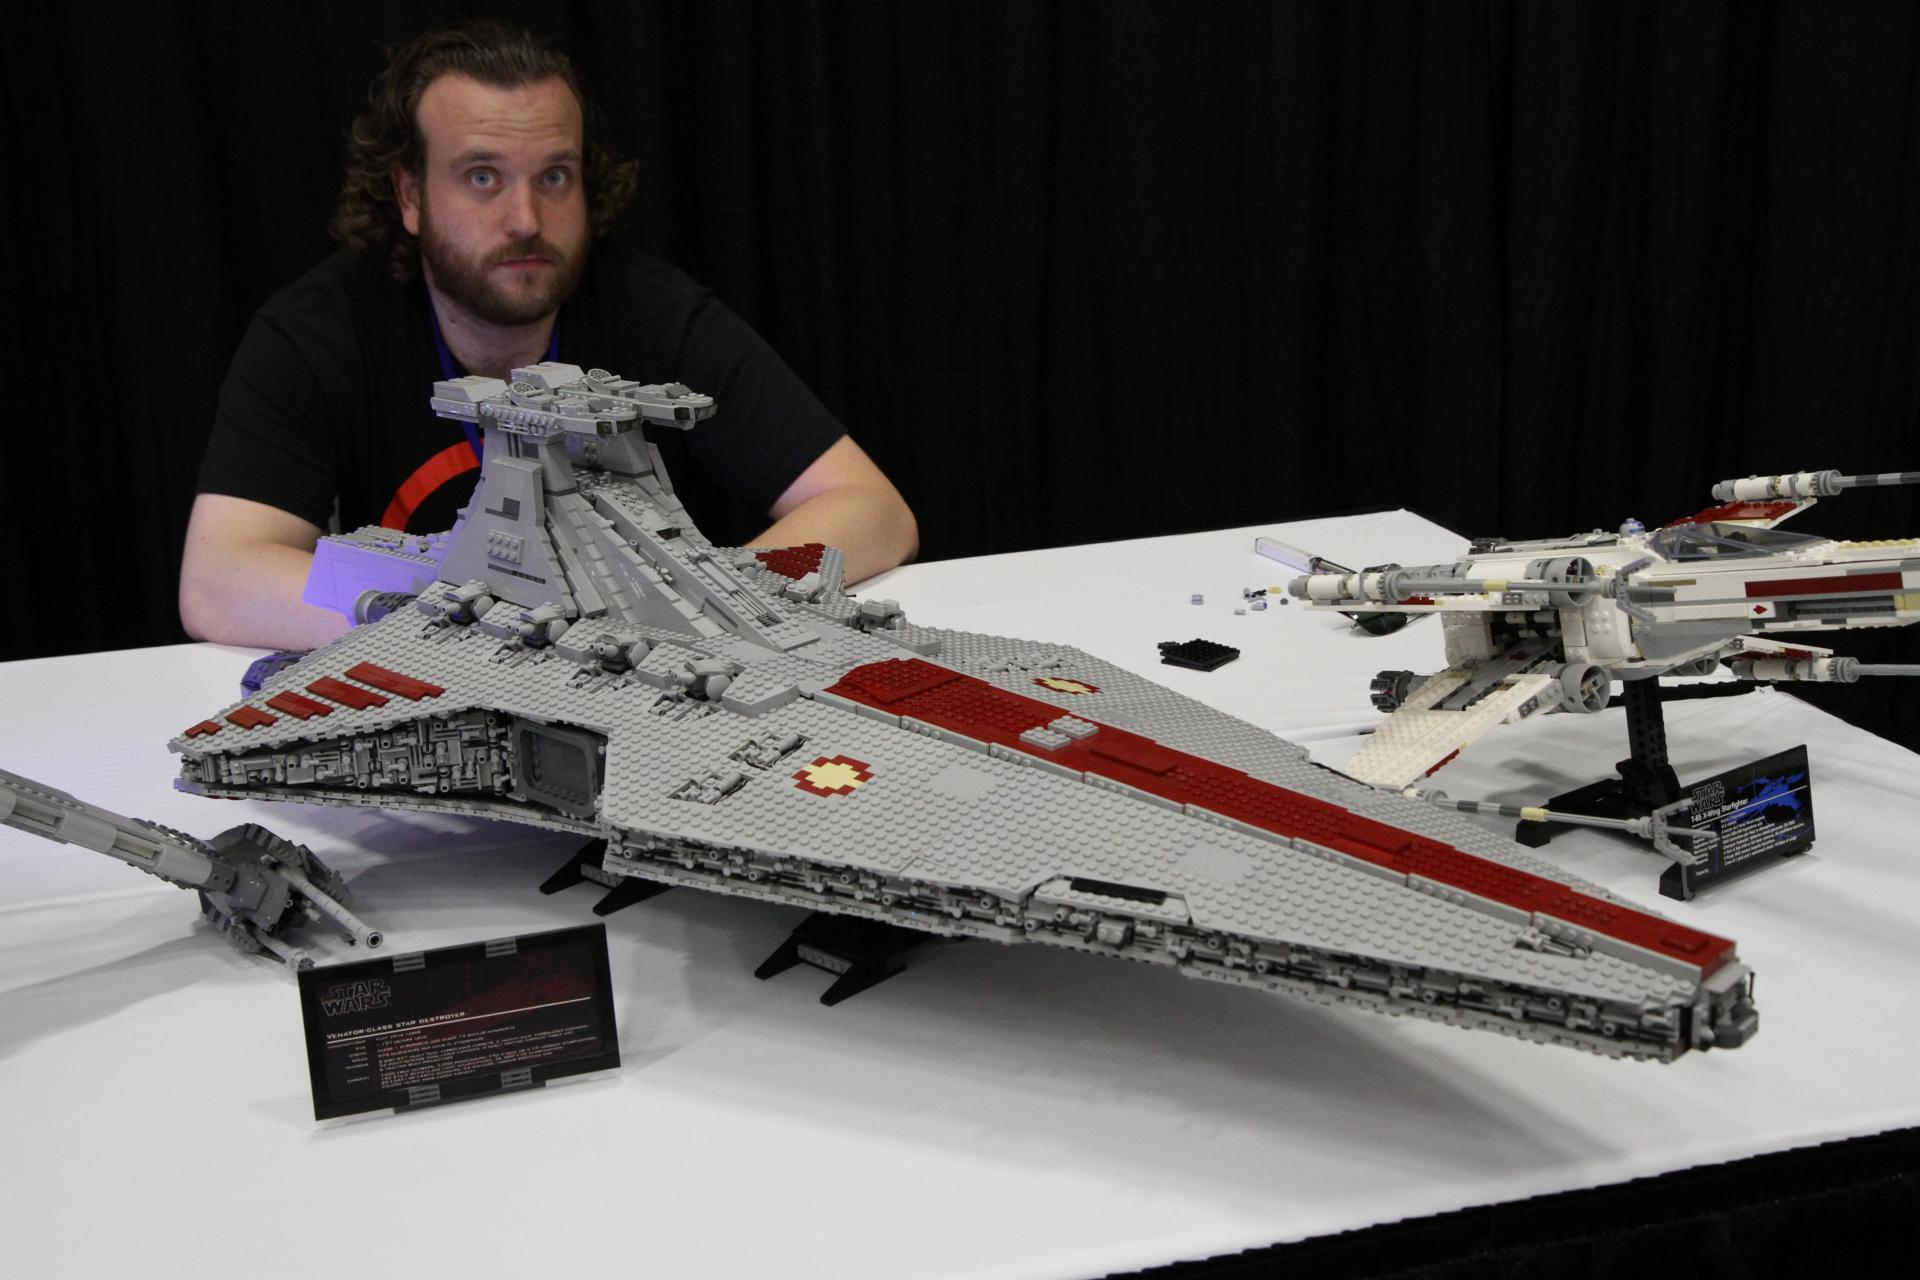 lego republic star destroyer - photo #26